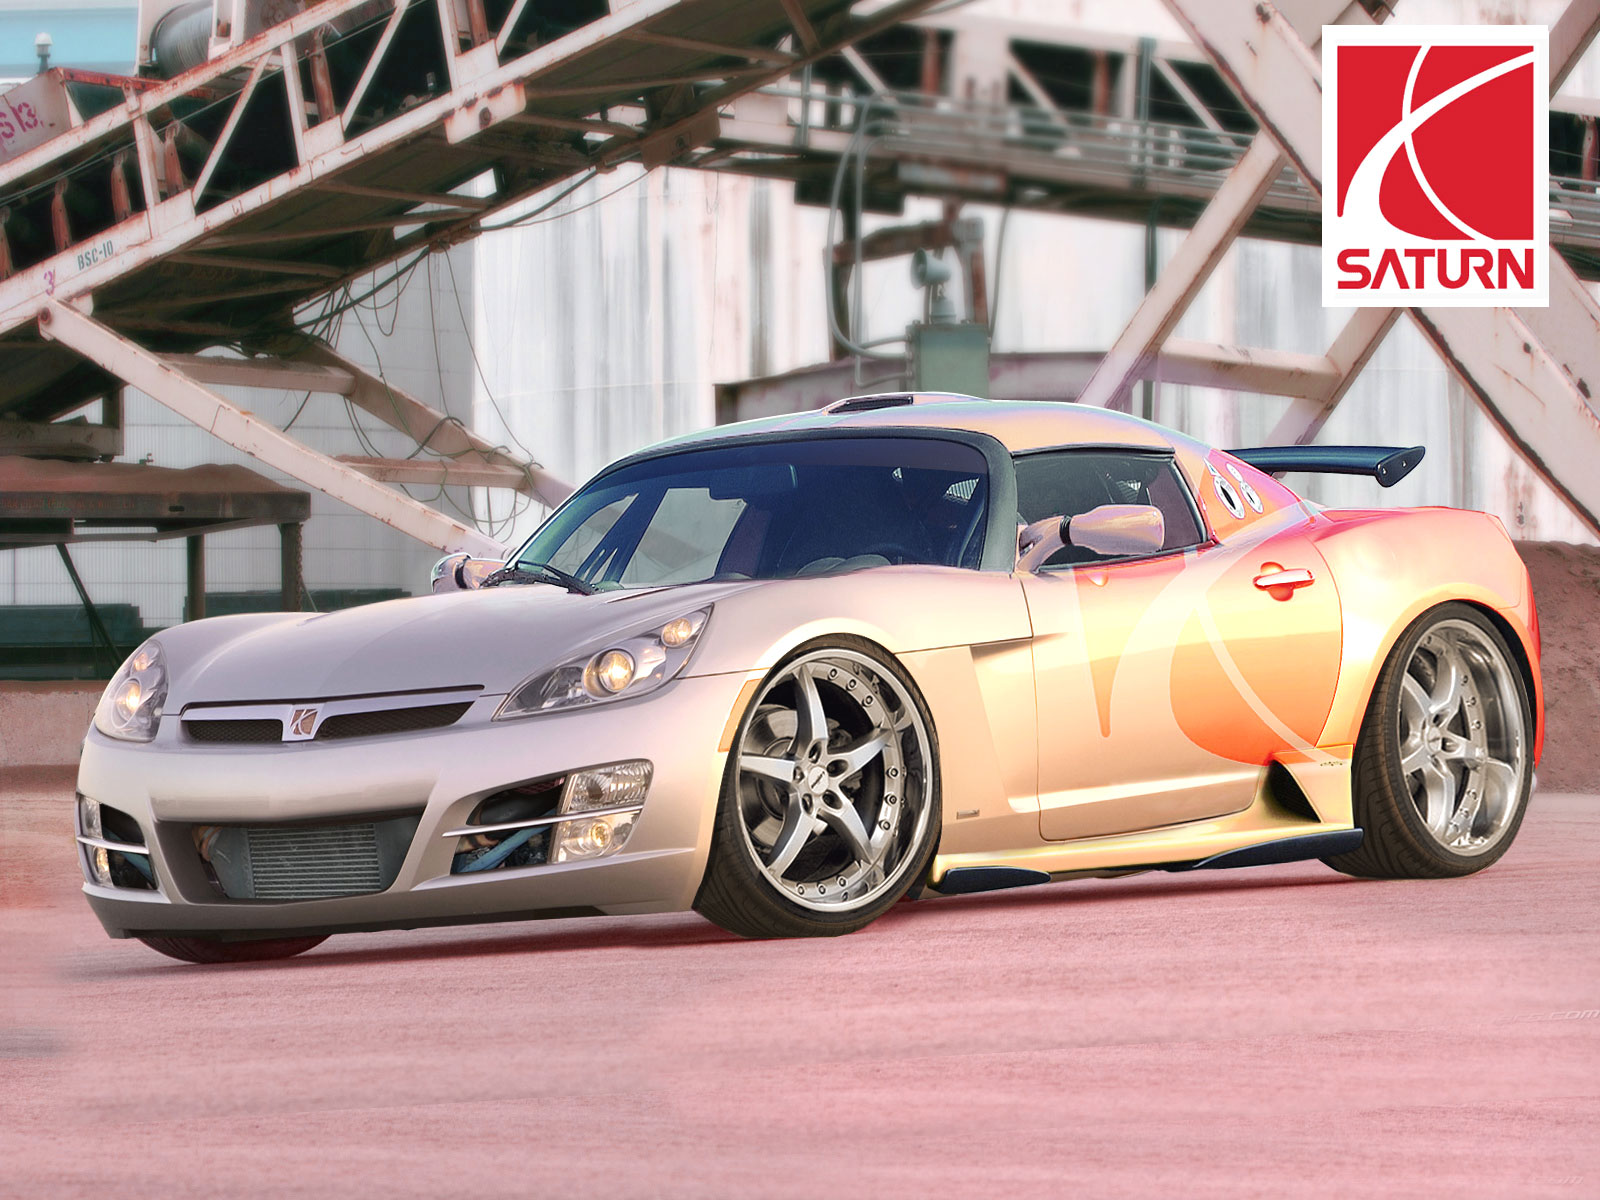 And Holly Crap   This Body Kit Actually Makes The Solstice Attractive!